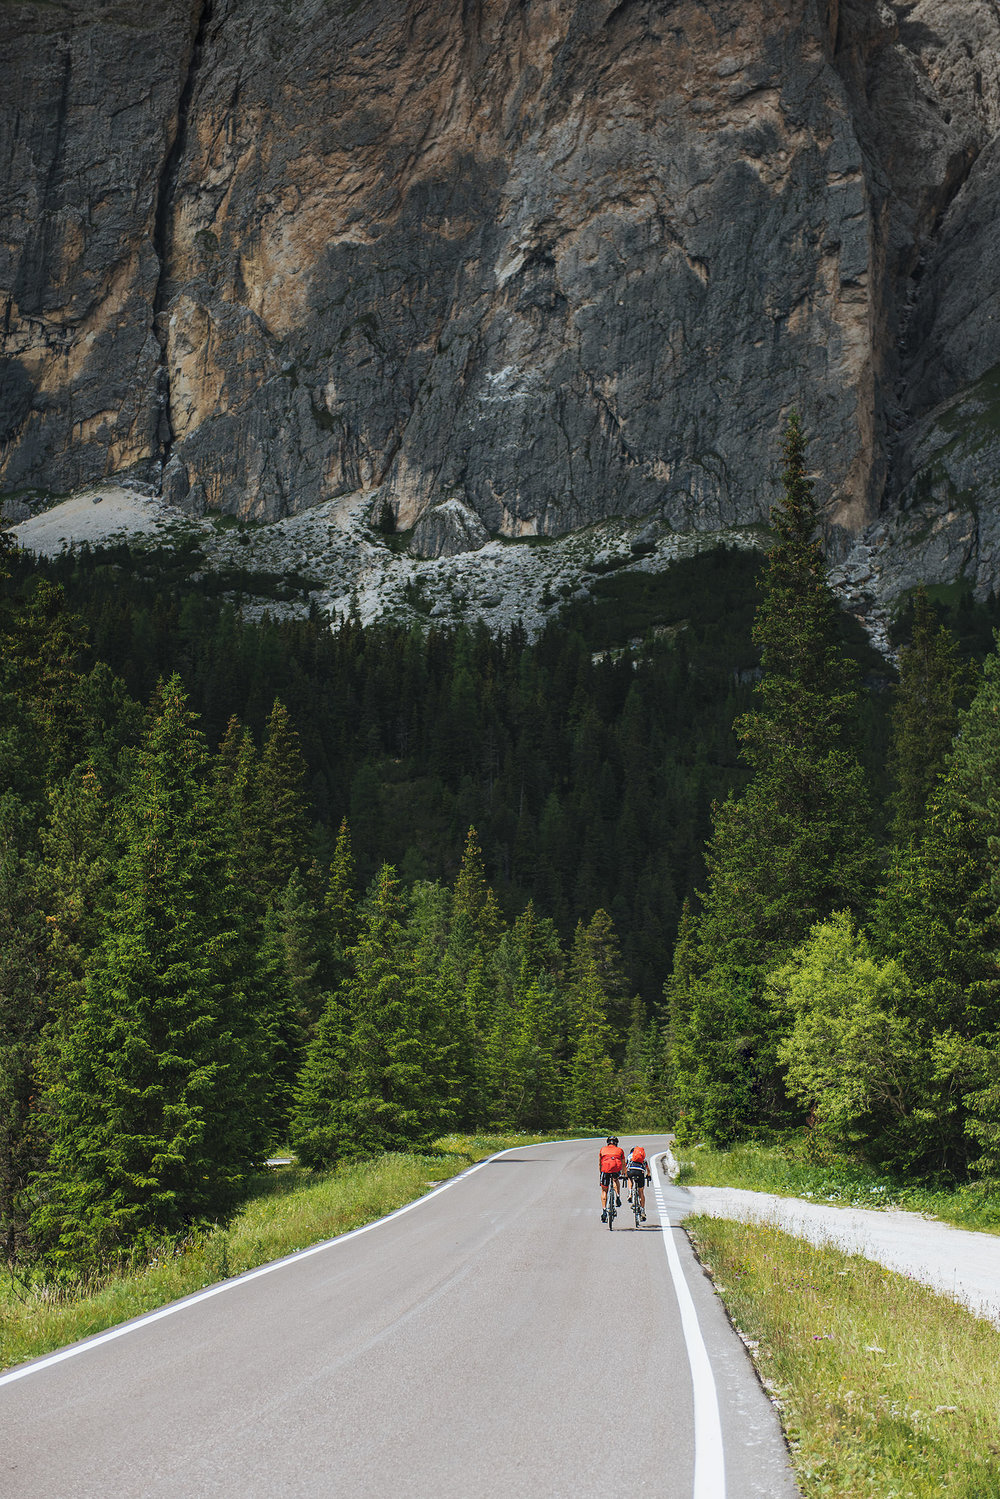 22-outdoor-adventure-mountains-italy-dolomites-cycling.jpg